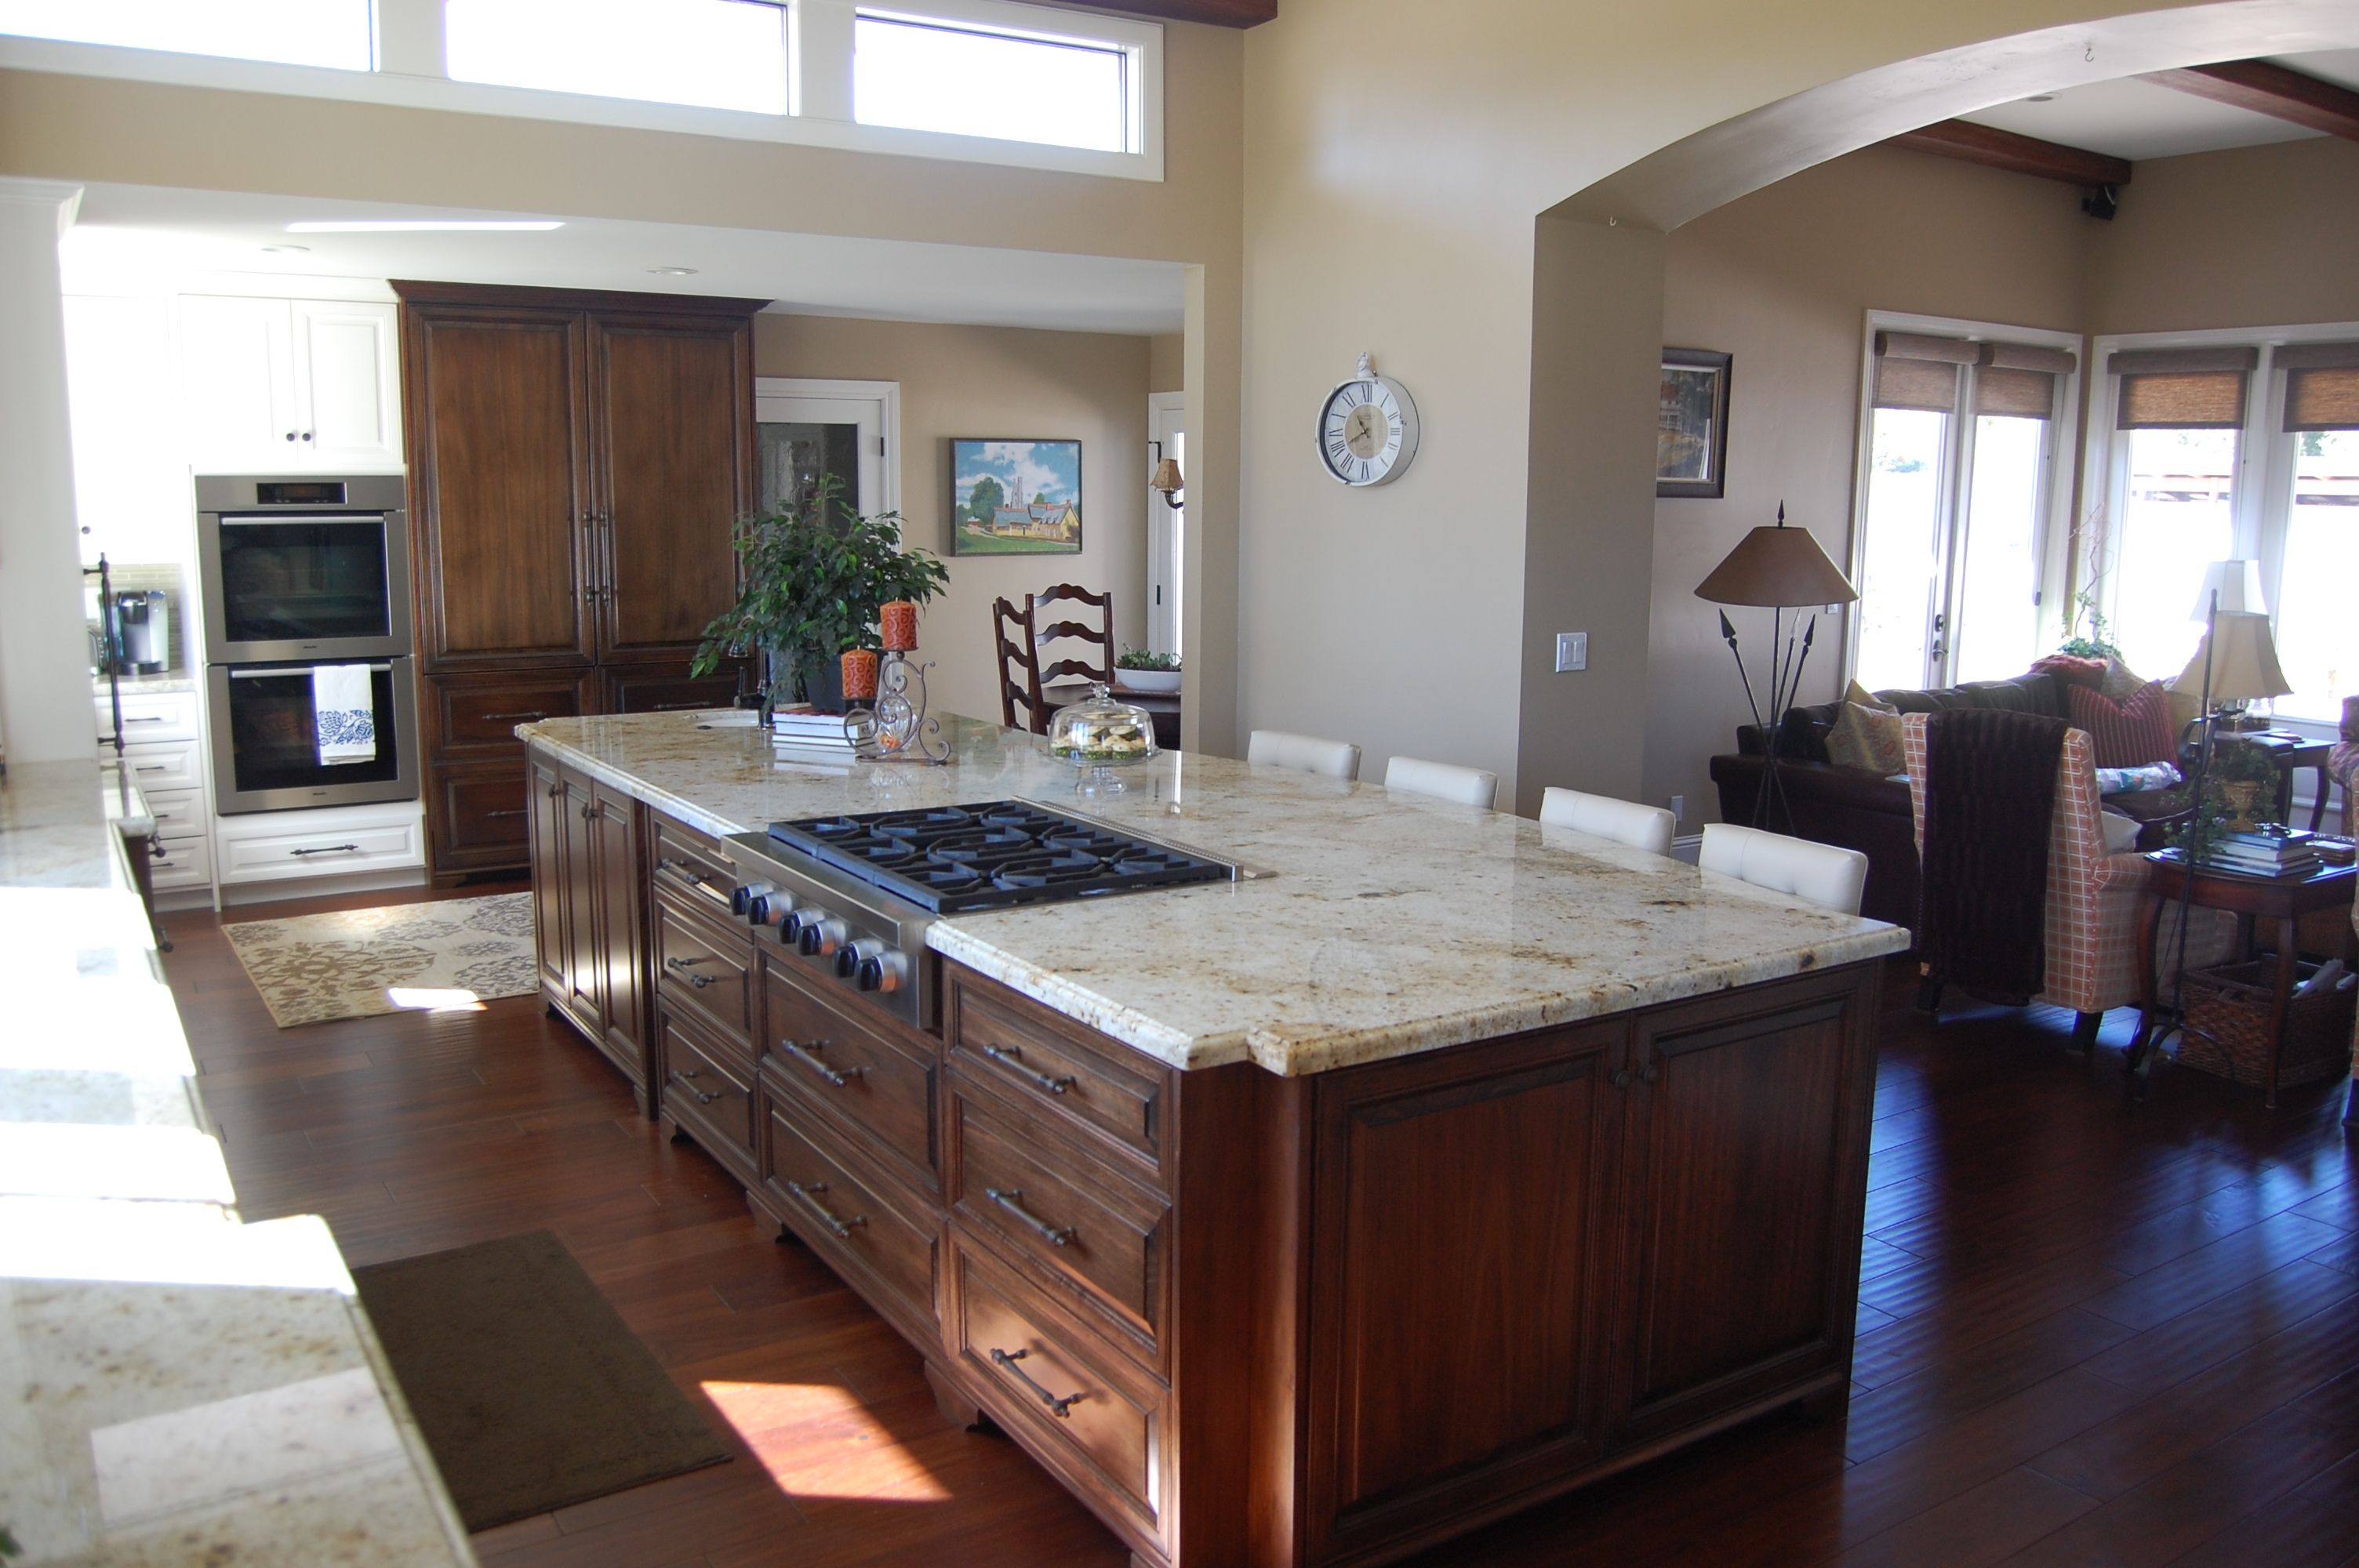 Large Kitchen Islands With Granite Top Large kitchen island with wood cabinets, a granite countertop, and a built  in oven